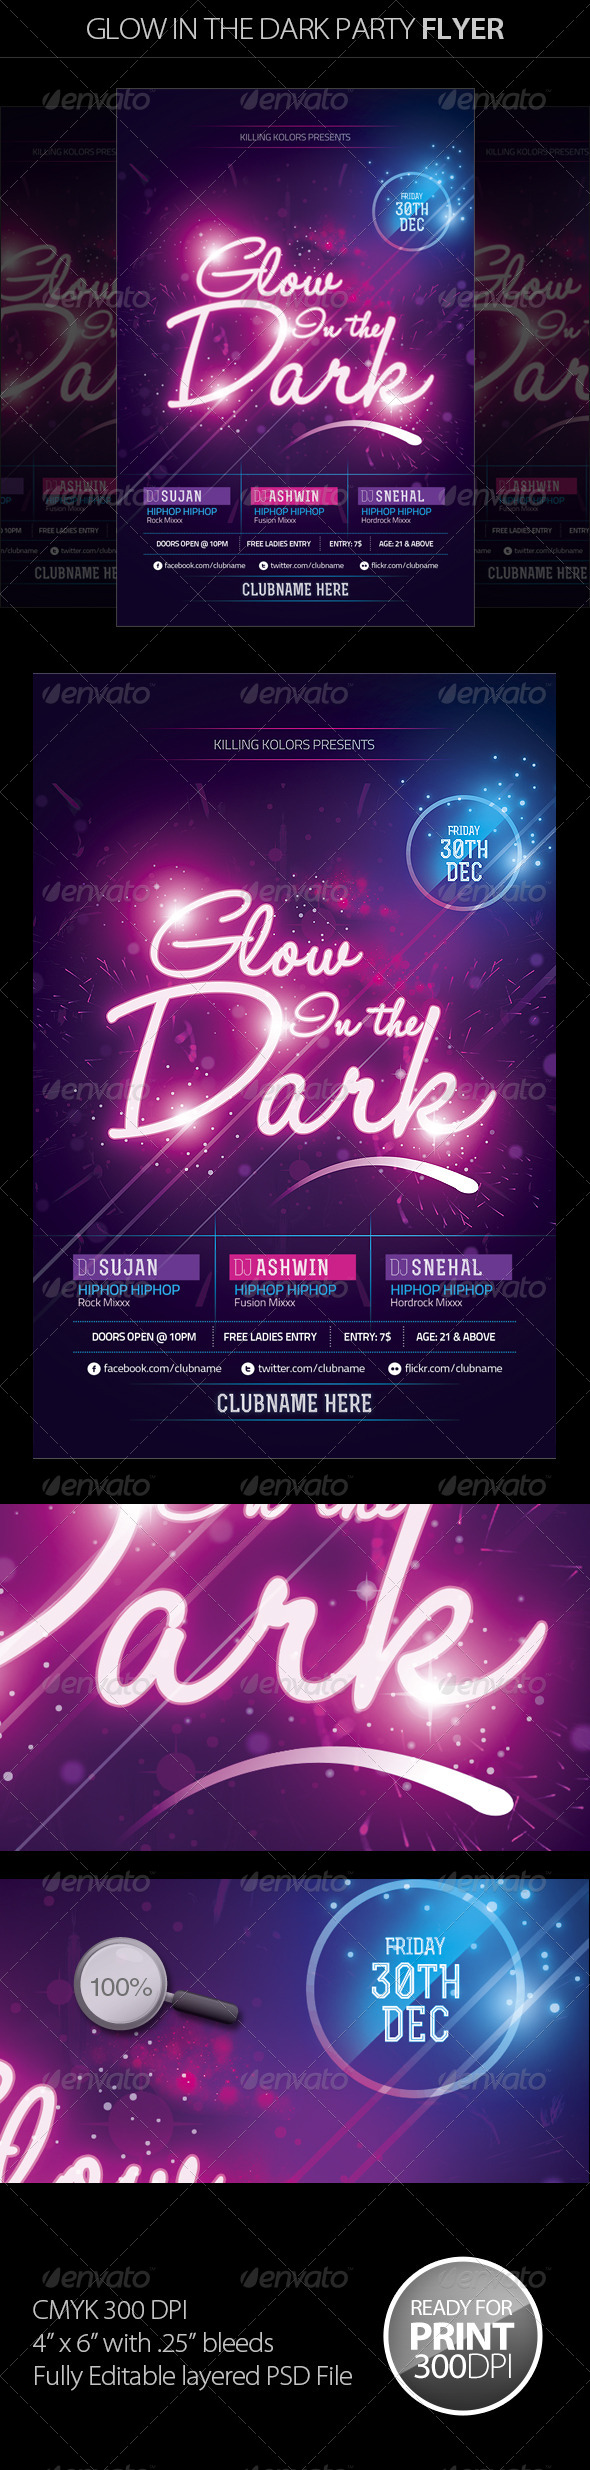 GraphicRiver Glow in the Dark Party Flyer II 5553354